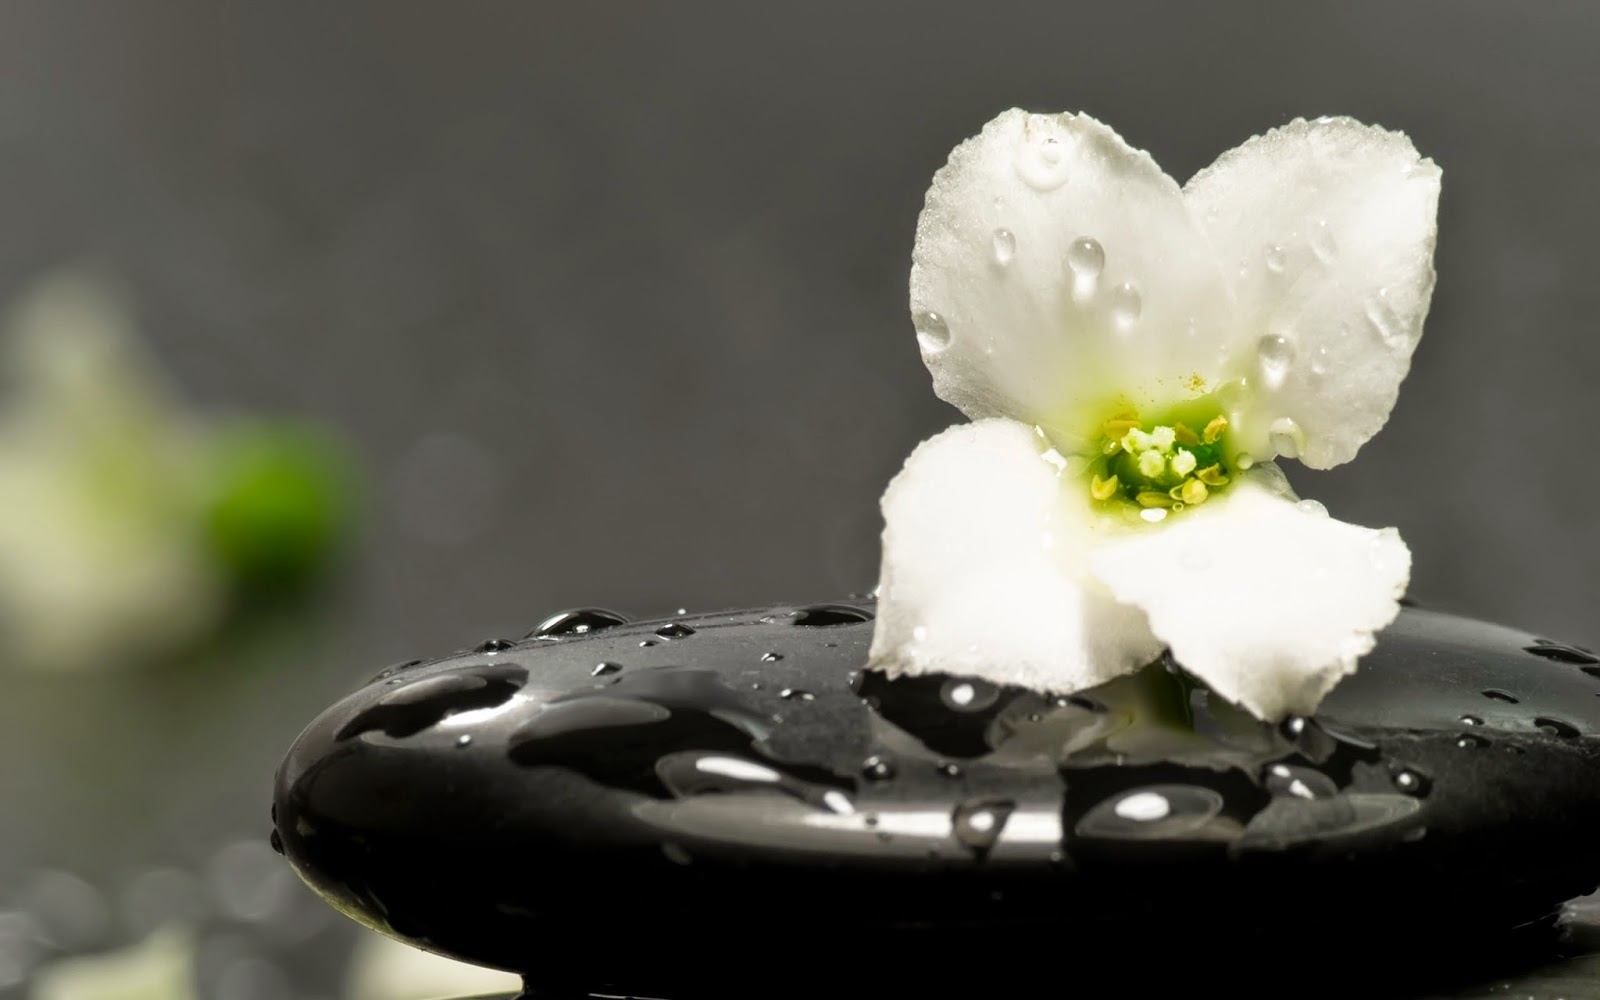 Chinese-Zen-meditation-pictures-1080p-Full-HD-widescreen-PIXHOME-wallpaper-wpc9203554